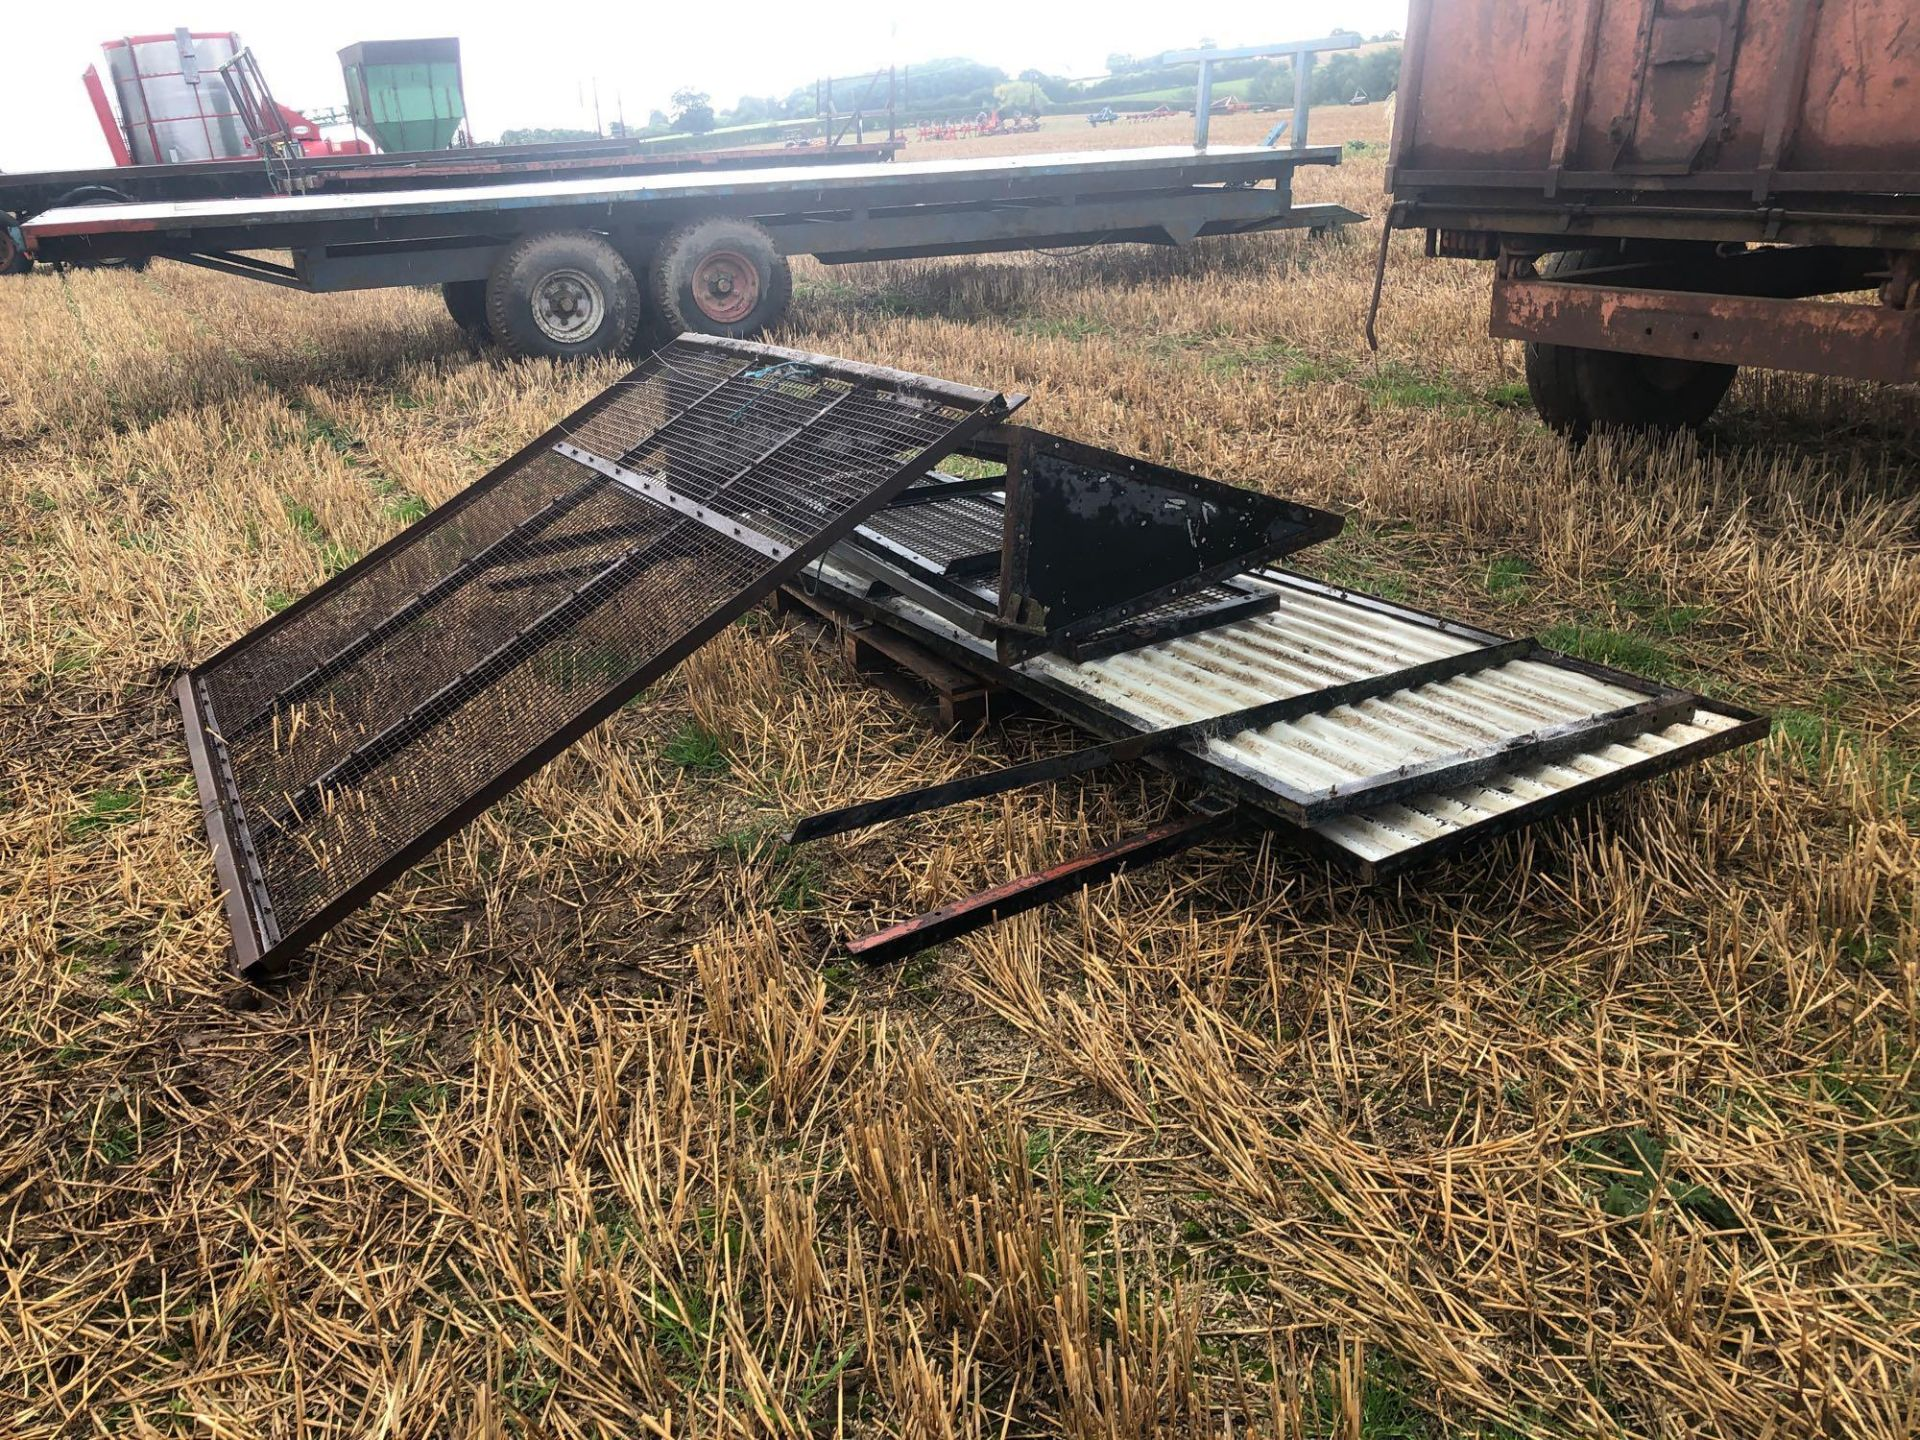 1978 6t homemade single axle trailer. C/w silage sides and back door. - Image 8 of 8